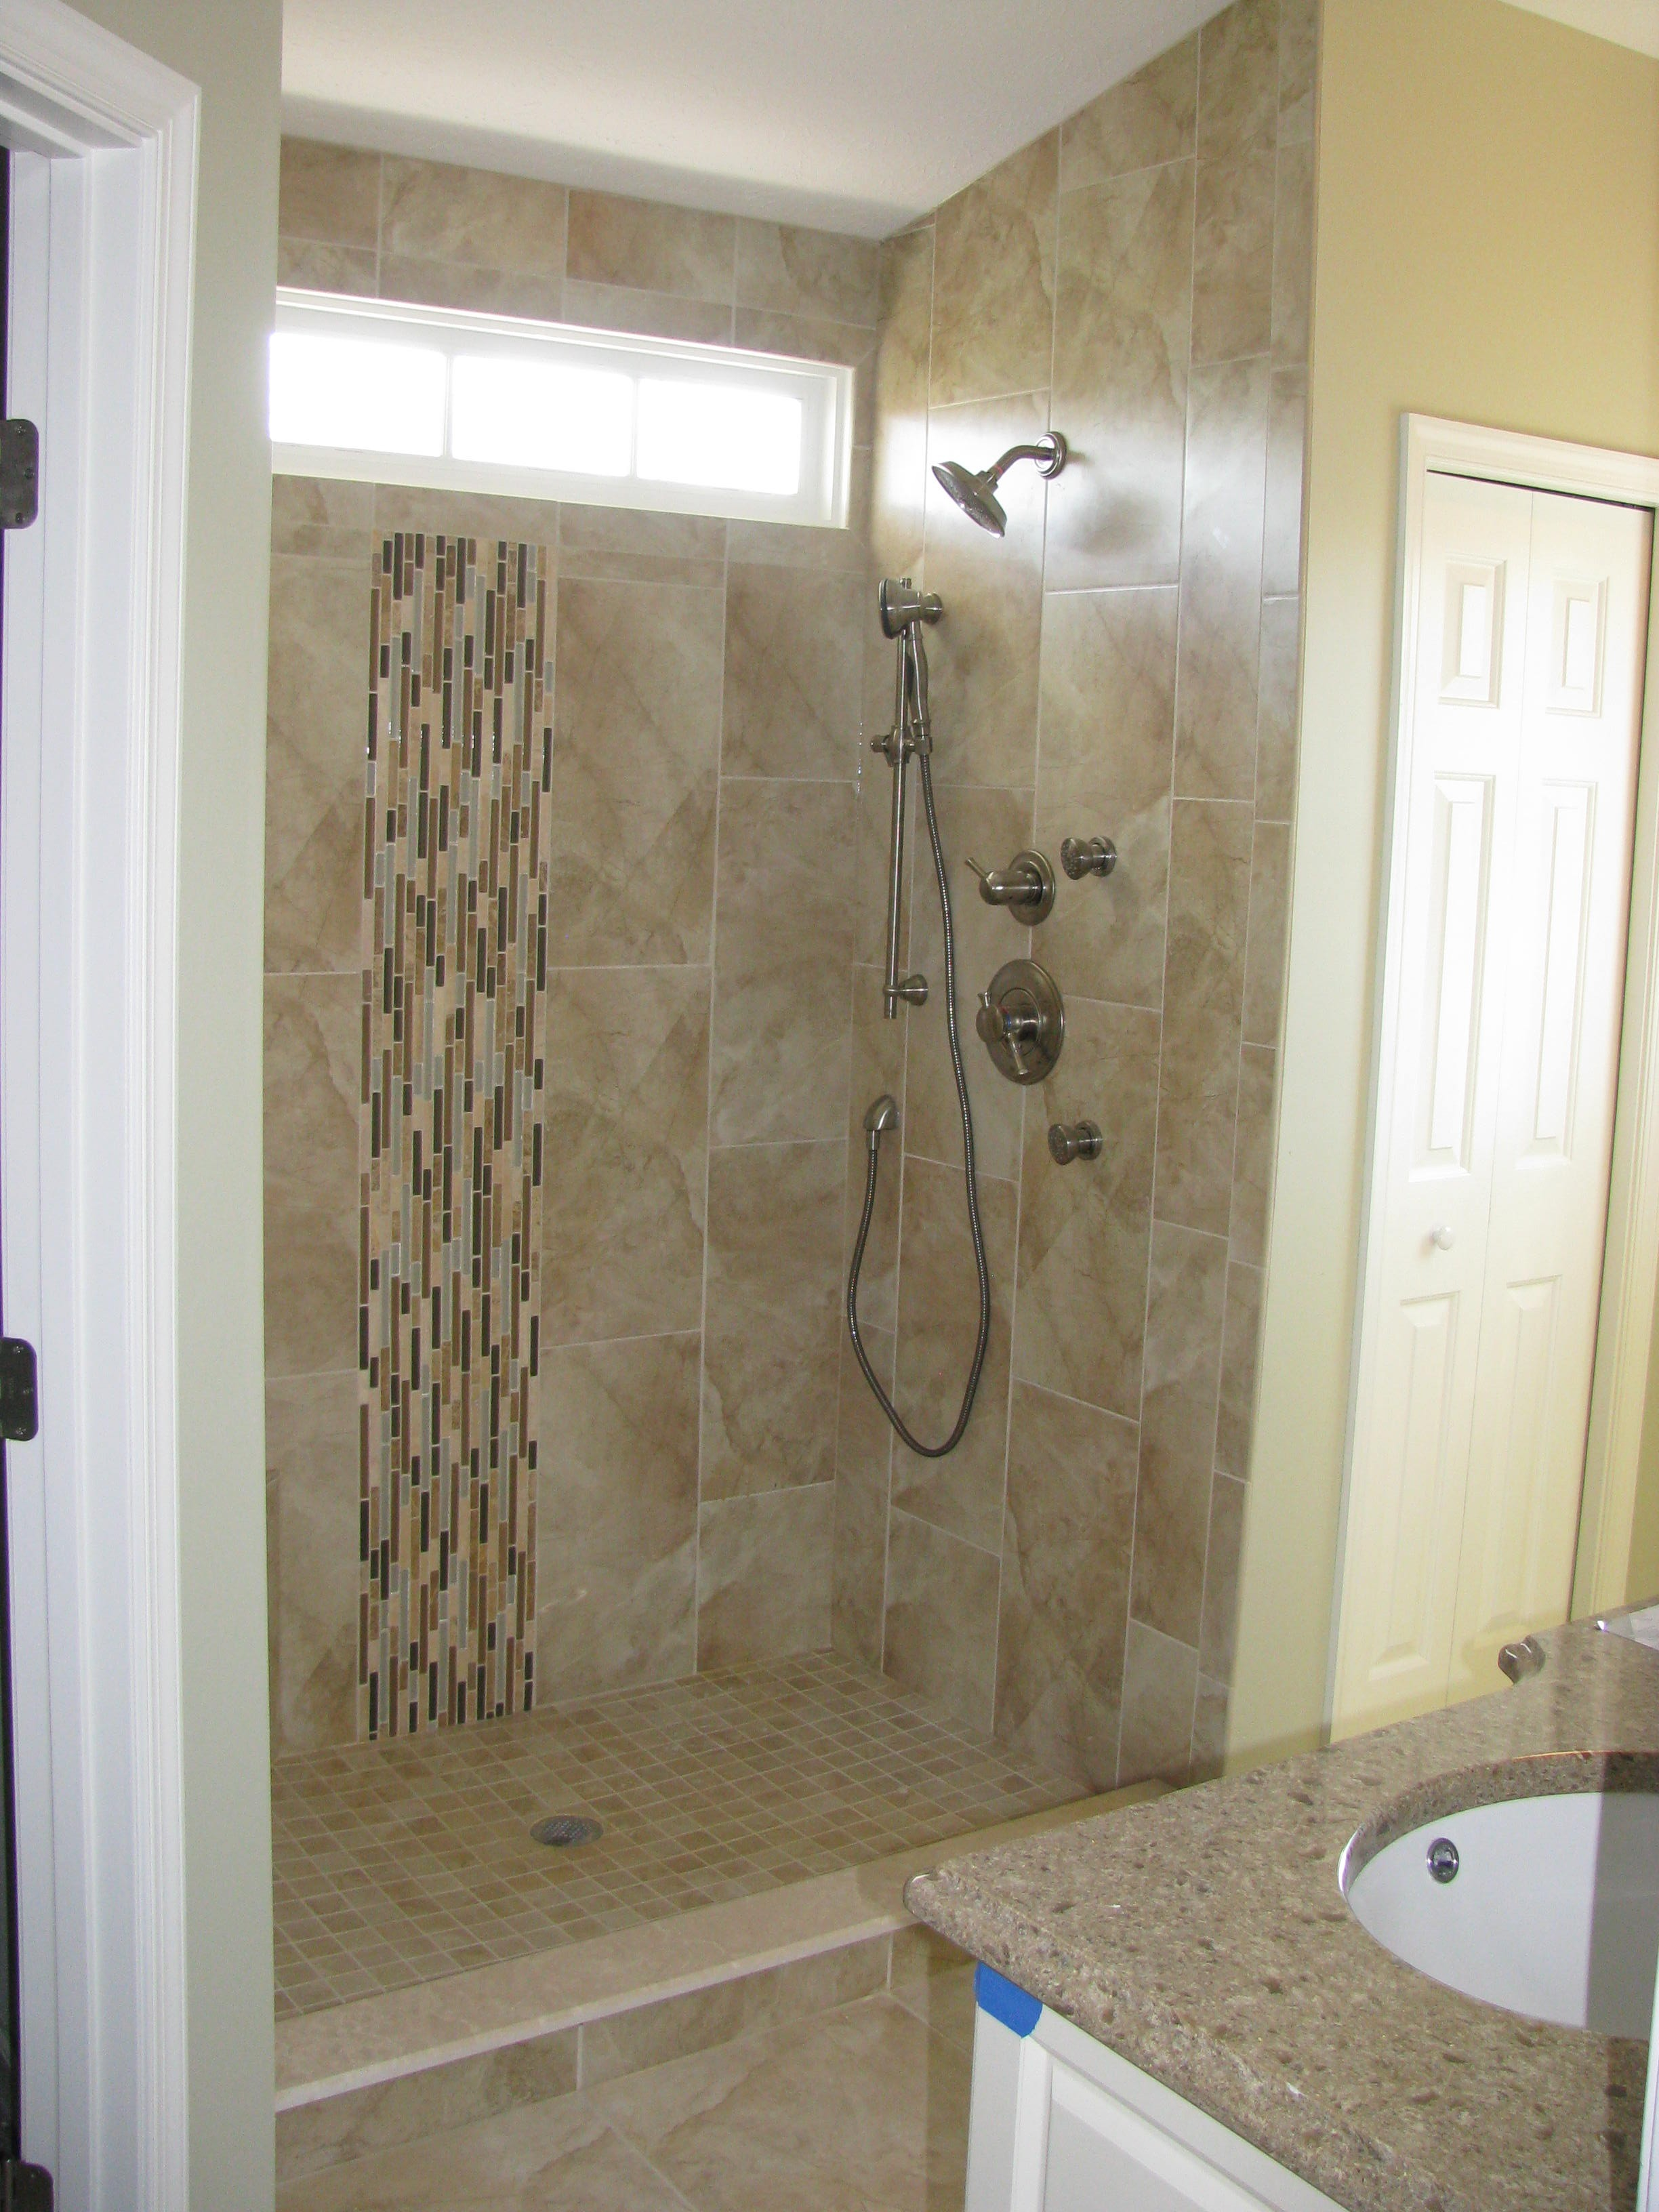 Bathroom Shower Designs Tile Bathroom Shower Floor Home Design. Bath shower tile design ideas